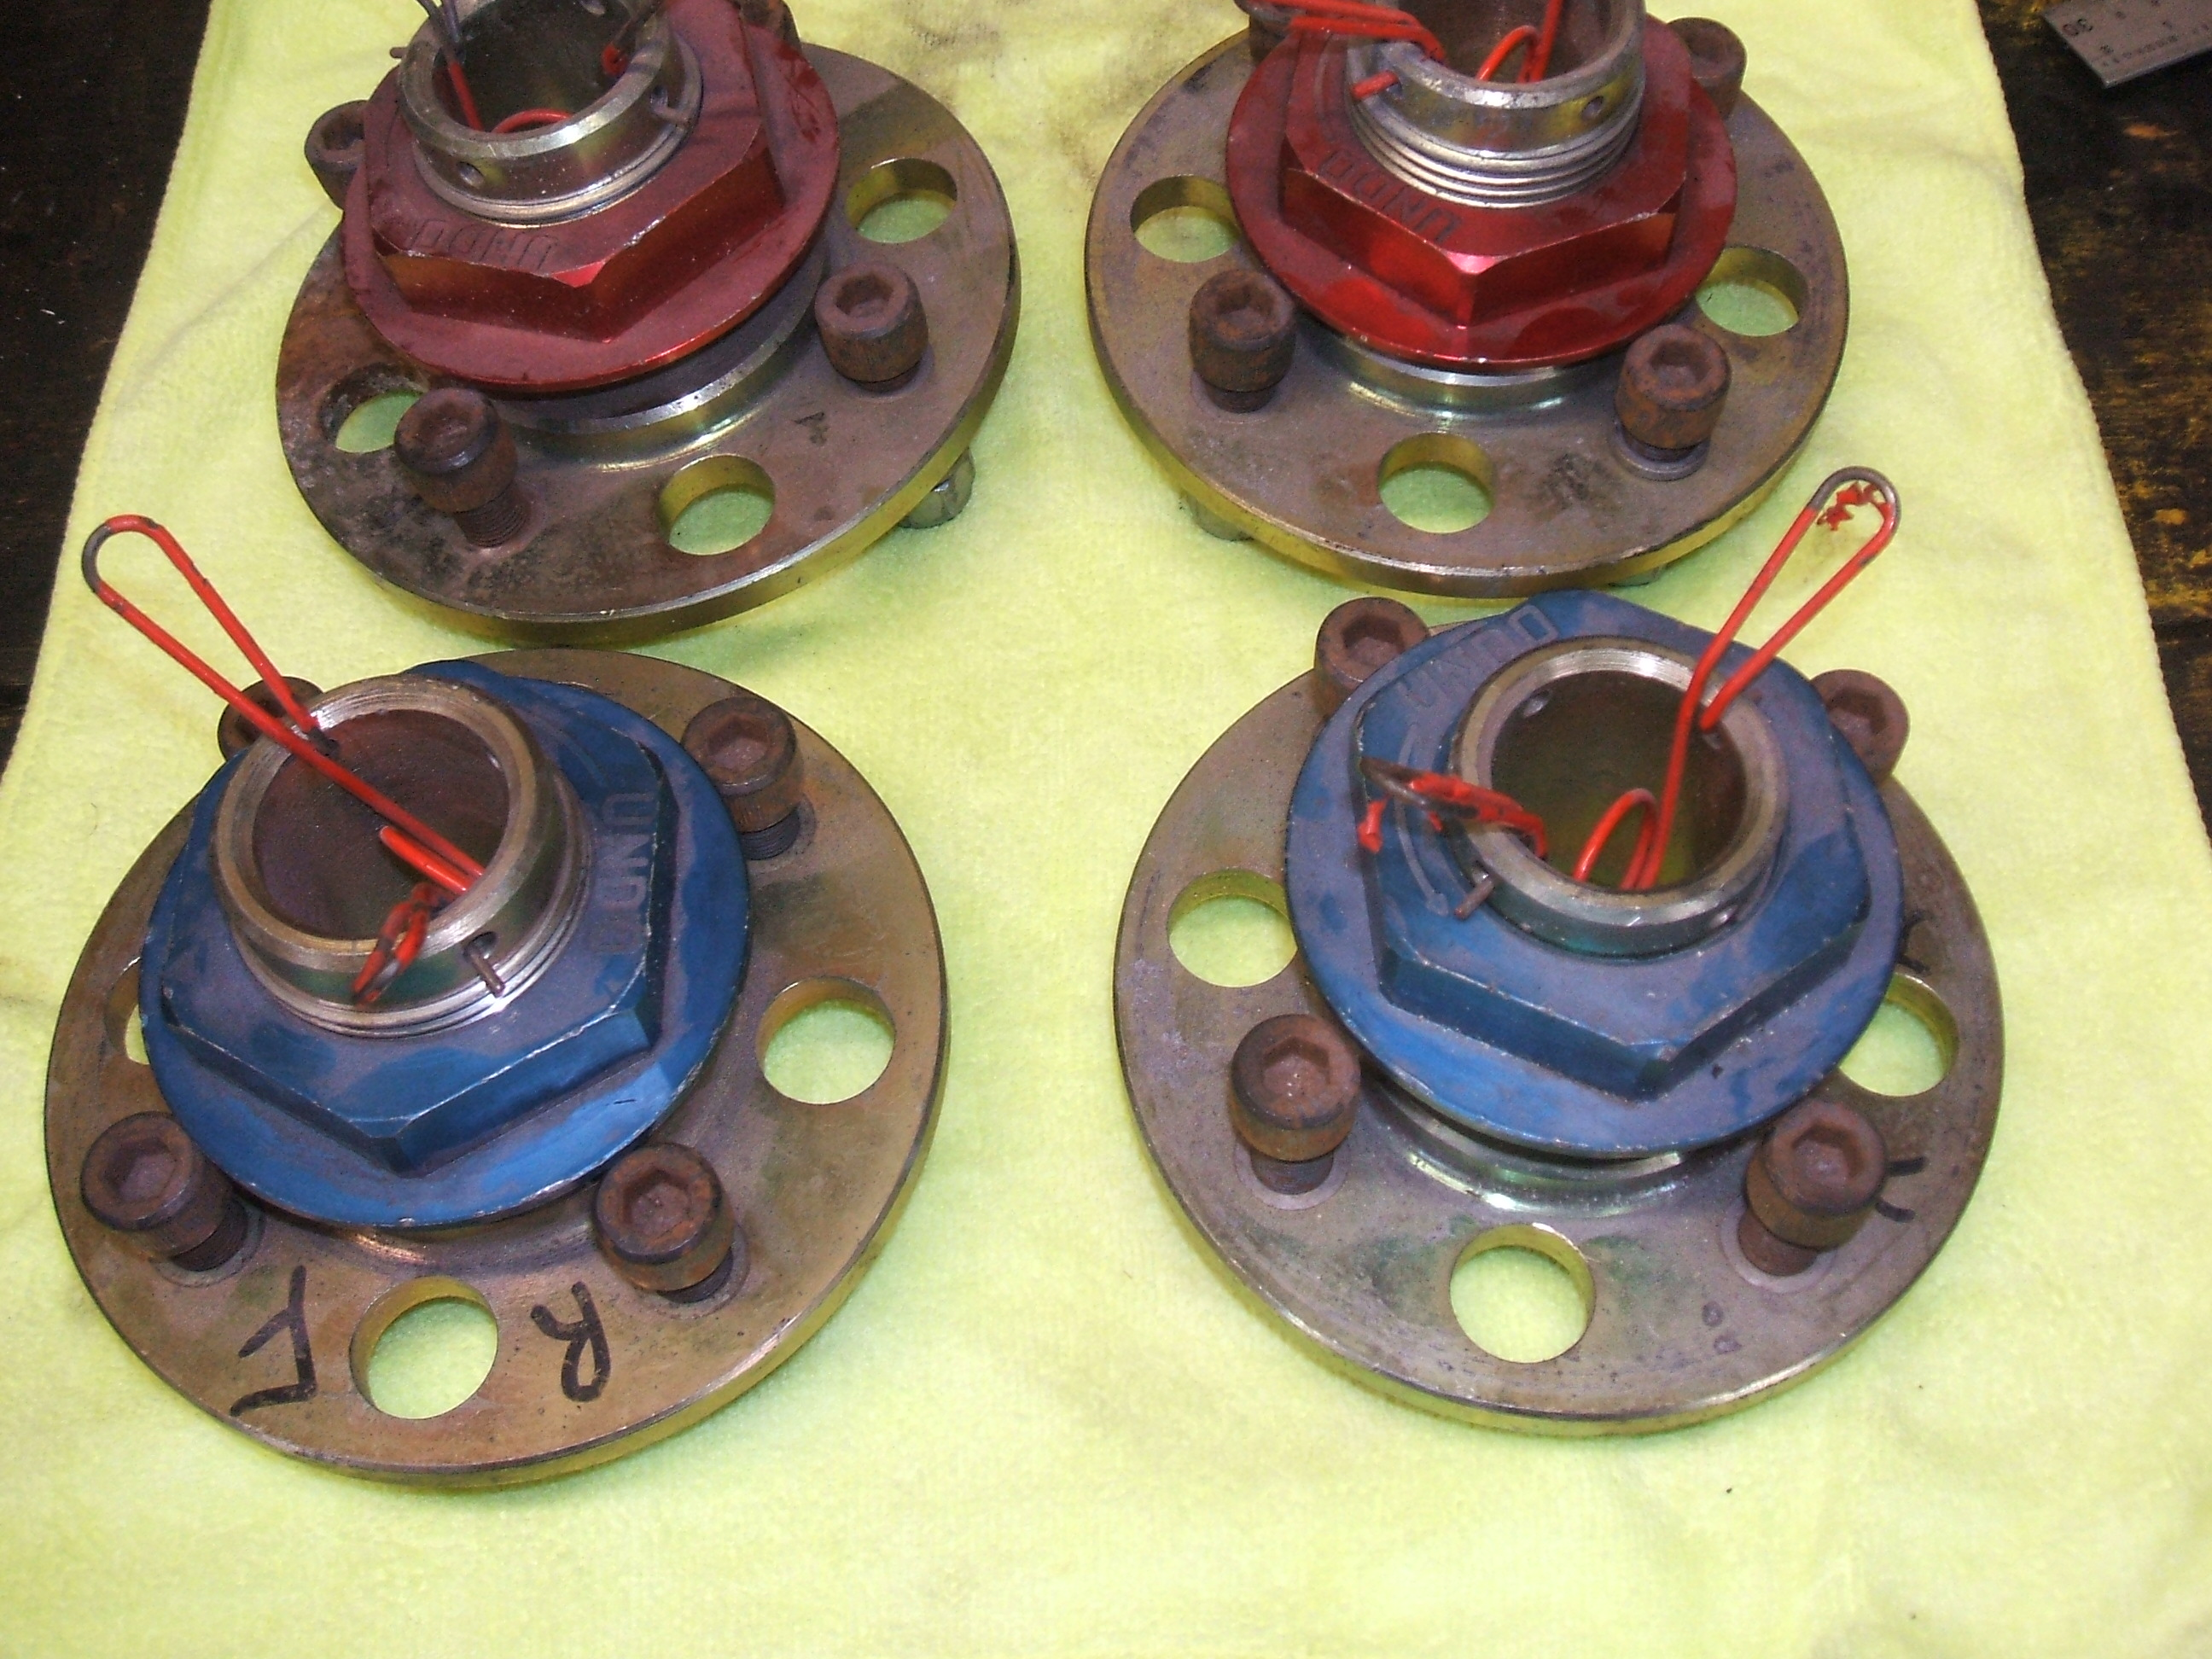 To single large nut ford pcd ideal race or rally car for quick wheel